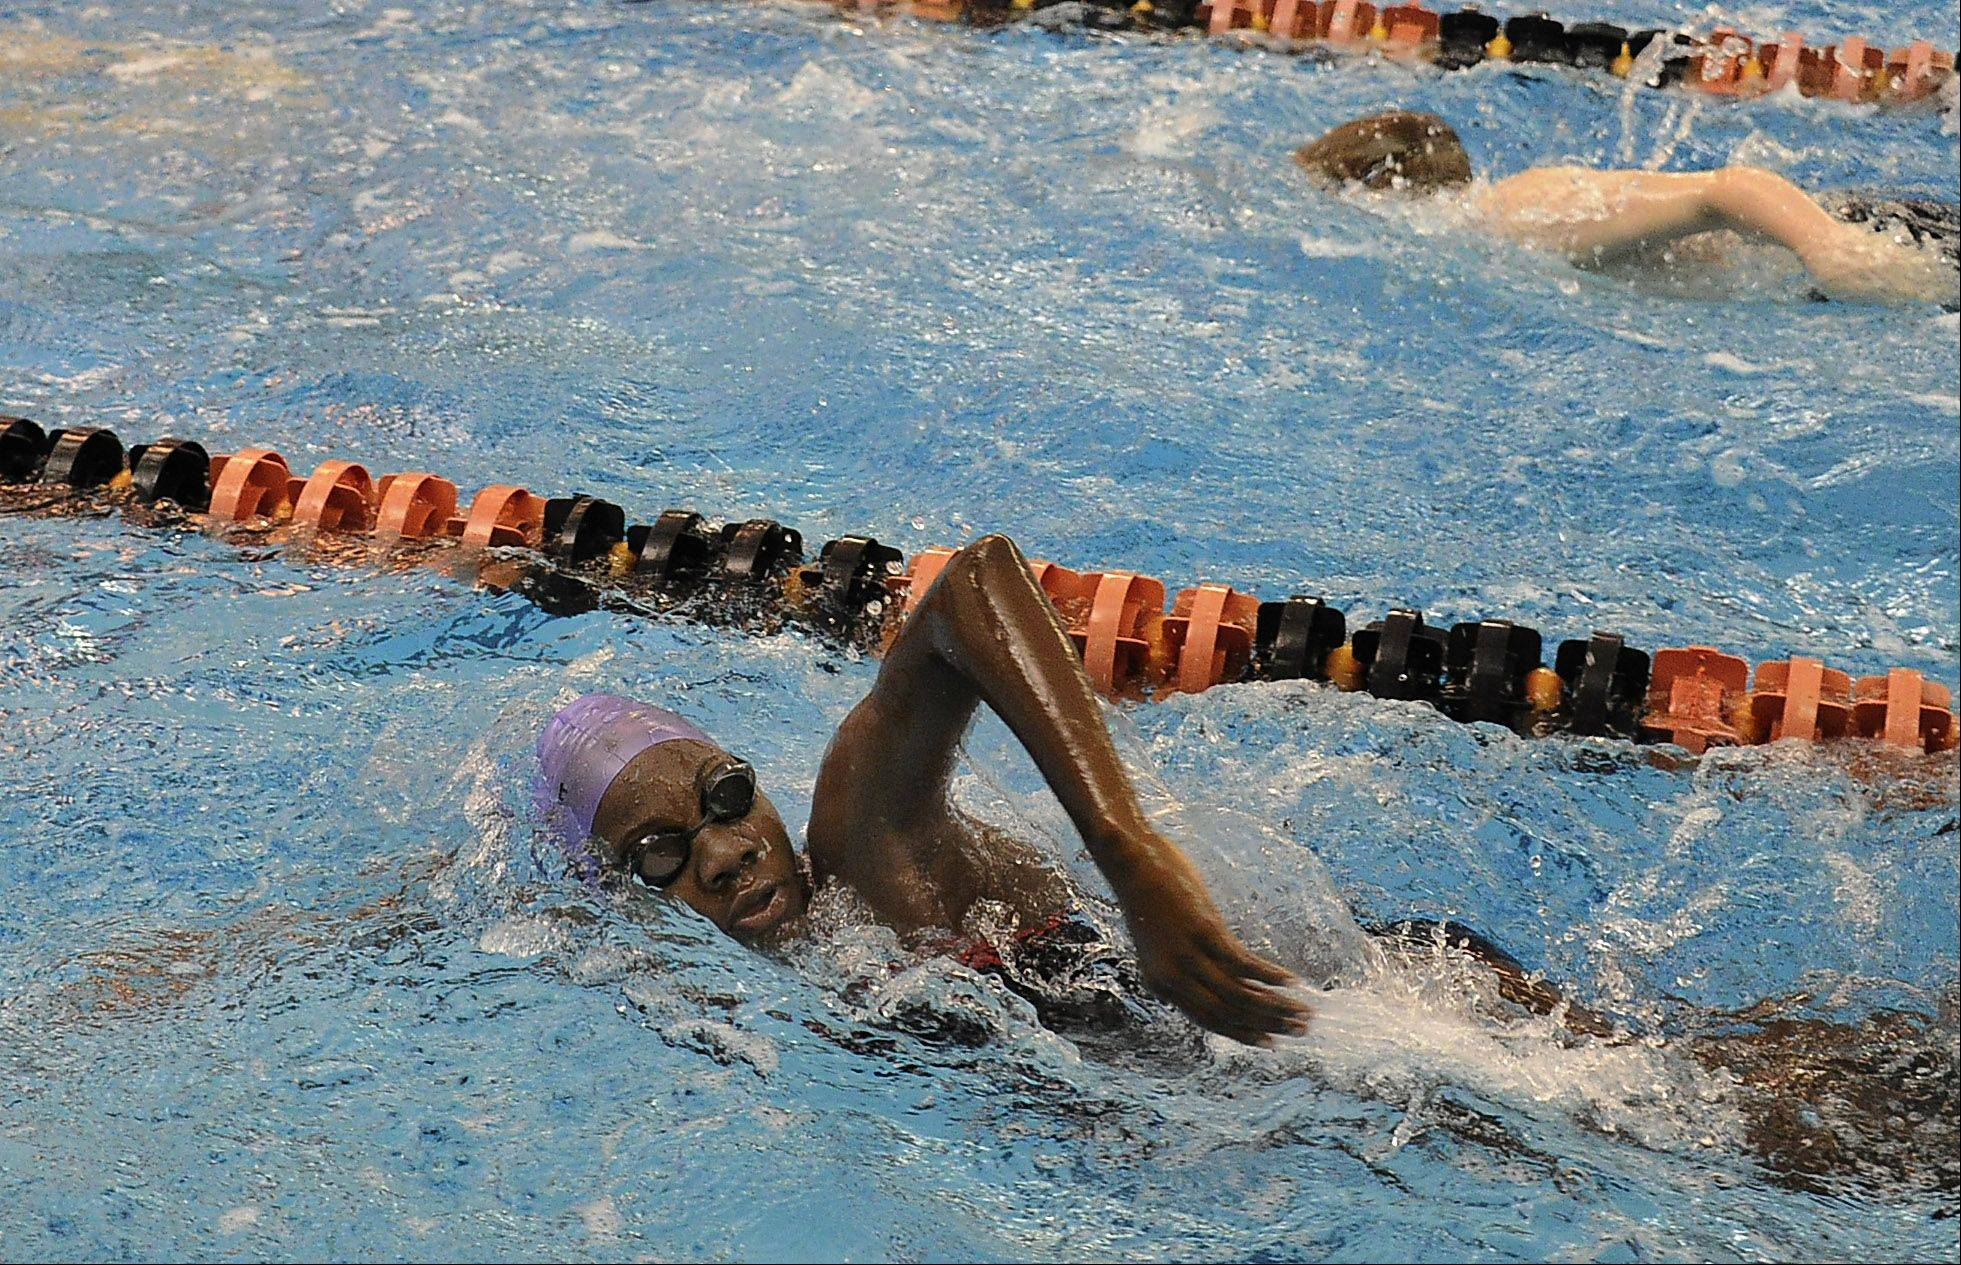 Llori Sharpe, 12, of the Jamaica Tornadoes Swim Club powers through a lap during practice Friday with the Barrington Swim Club at Barrington High School.